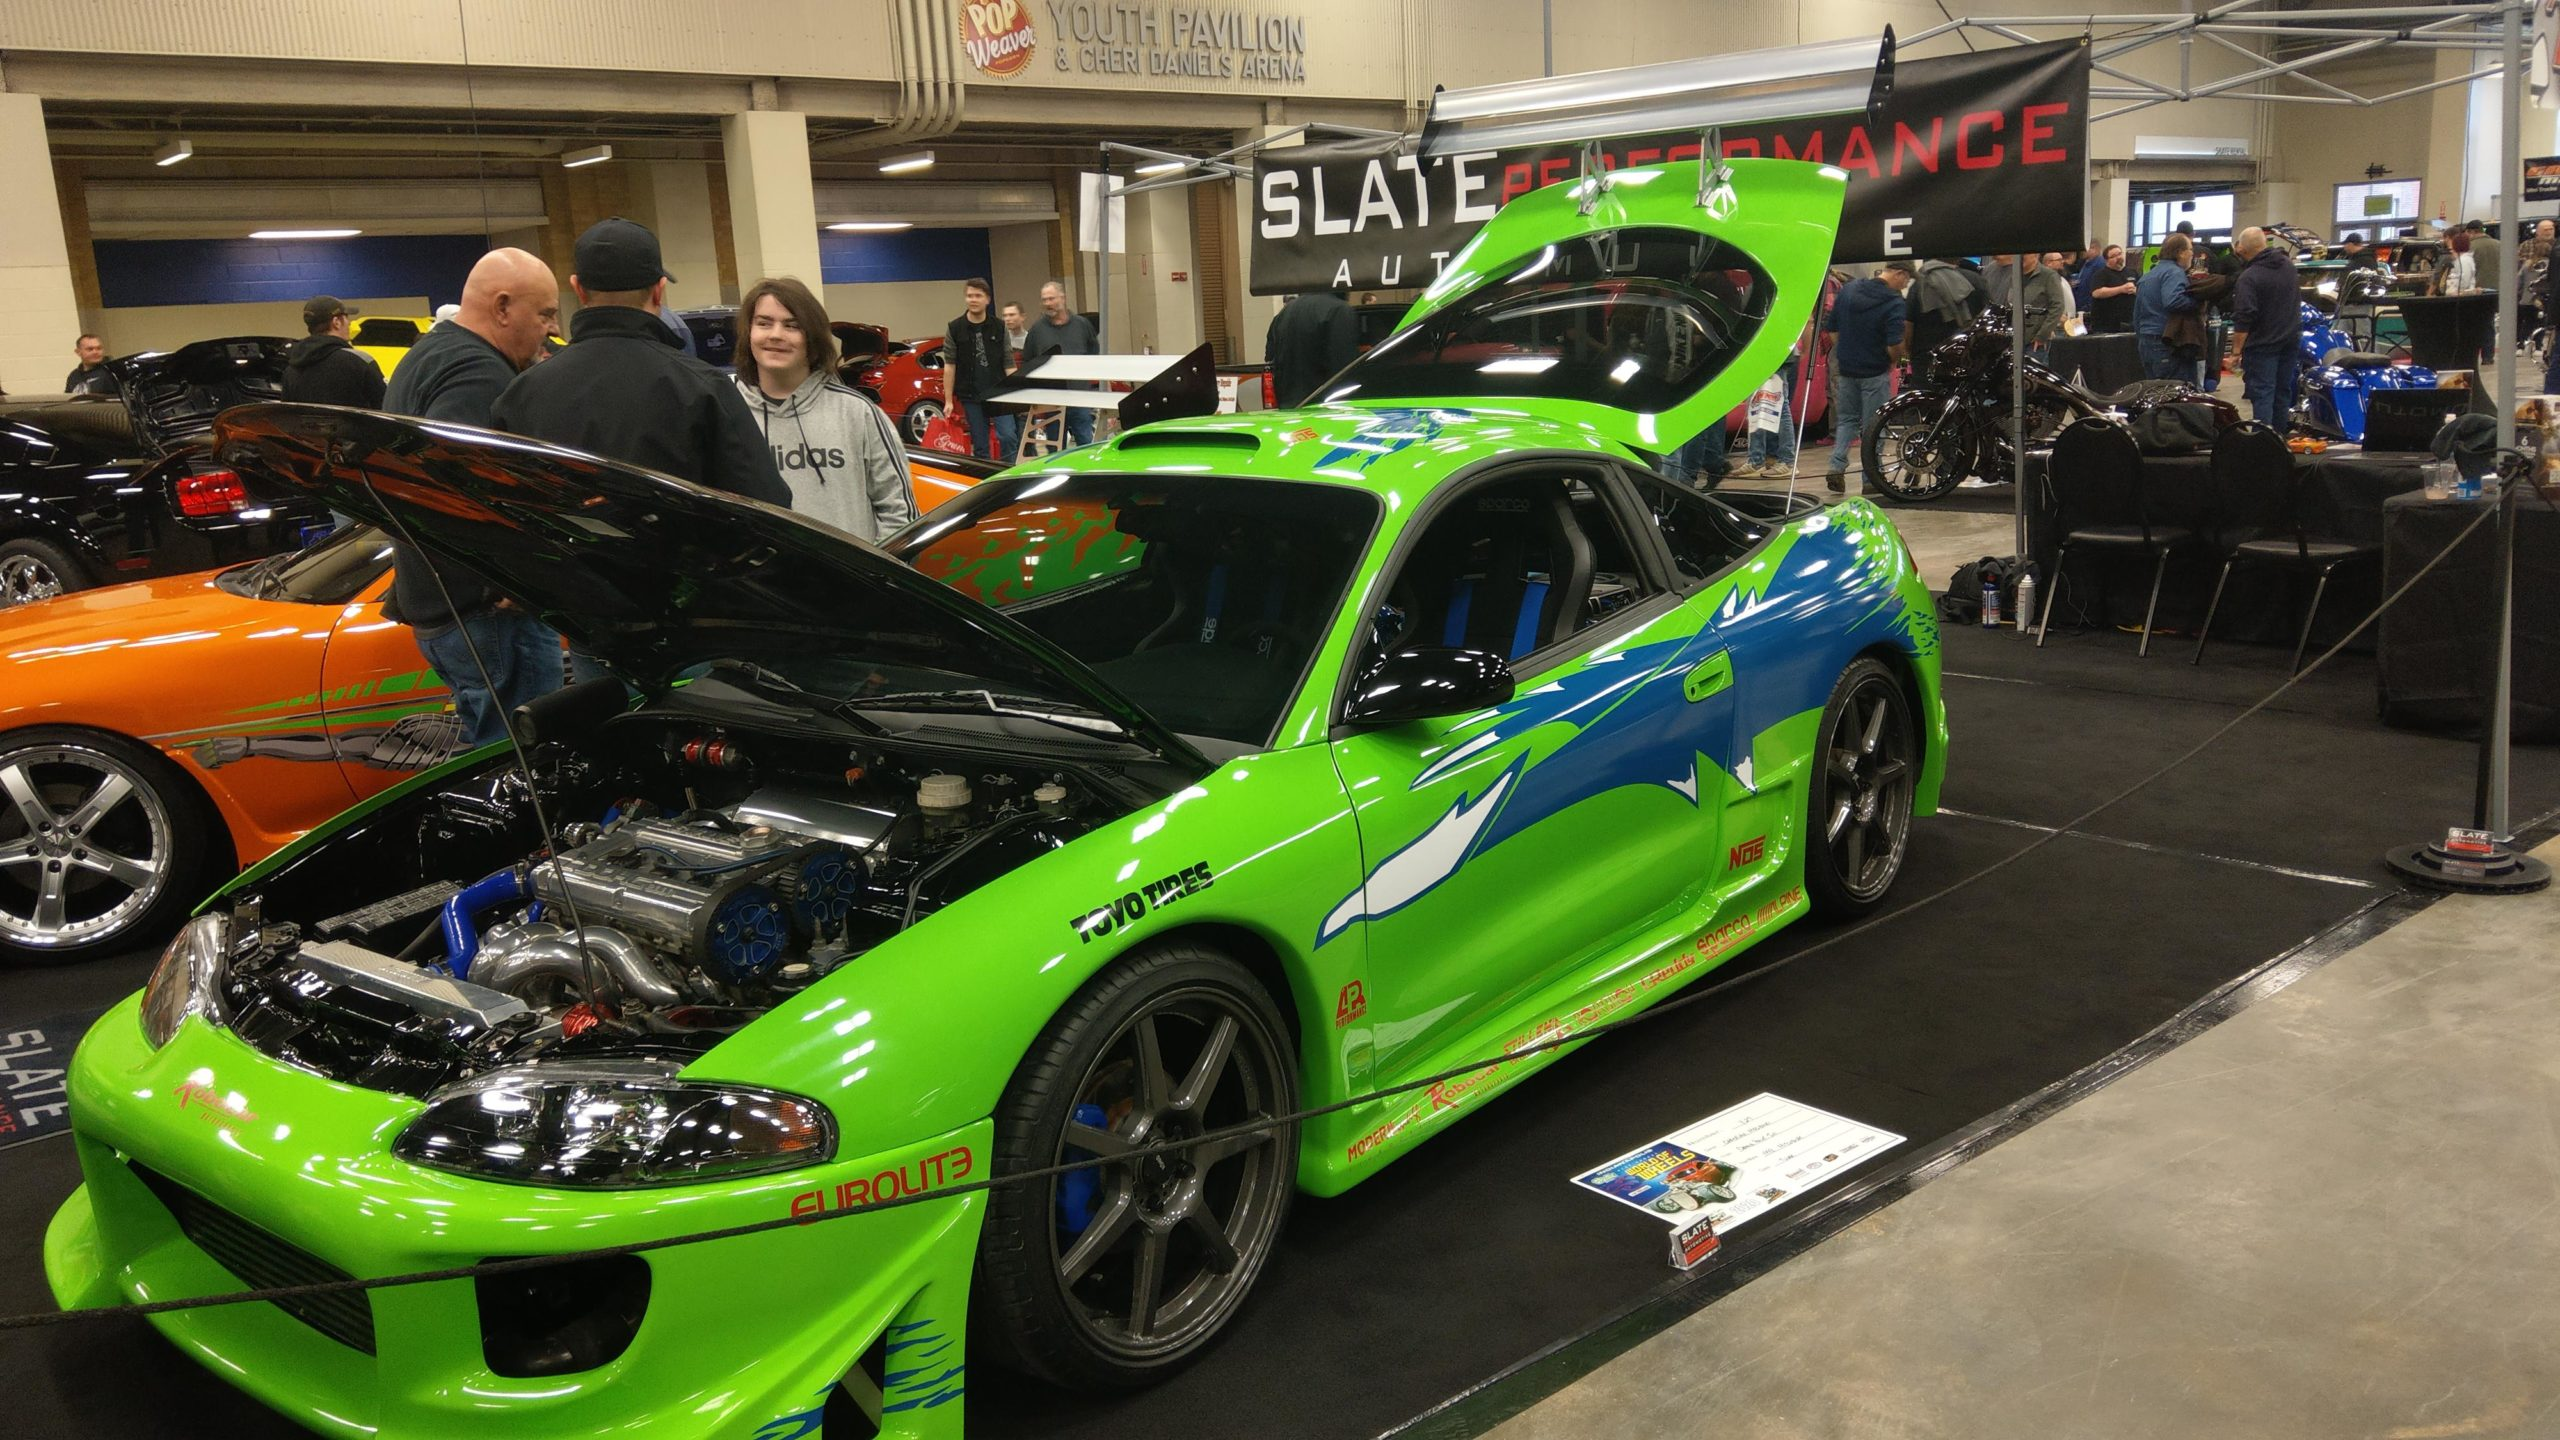 The fast and furious Mitsubishi Eclipse and next to it is the Toyota Supra